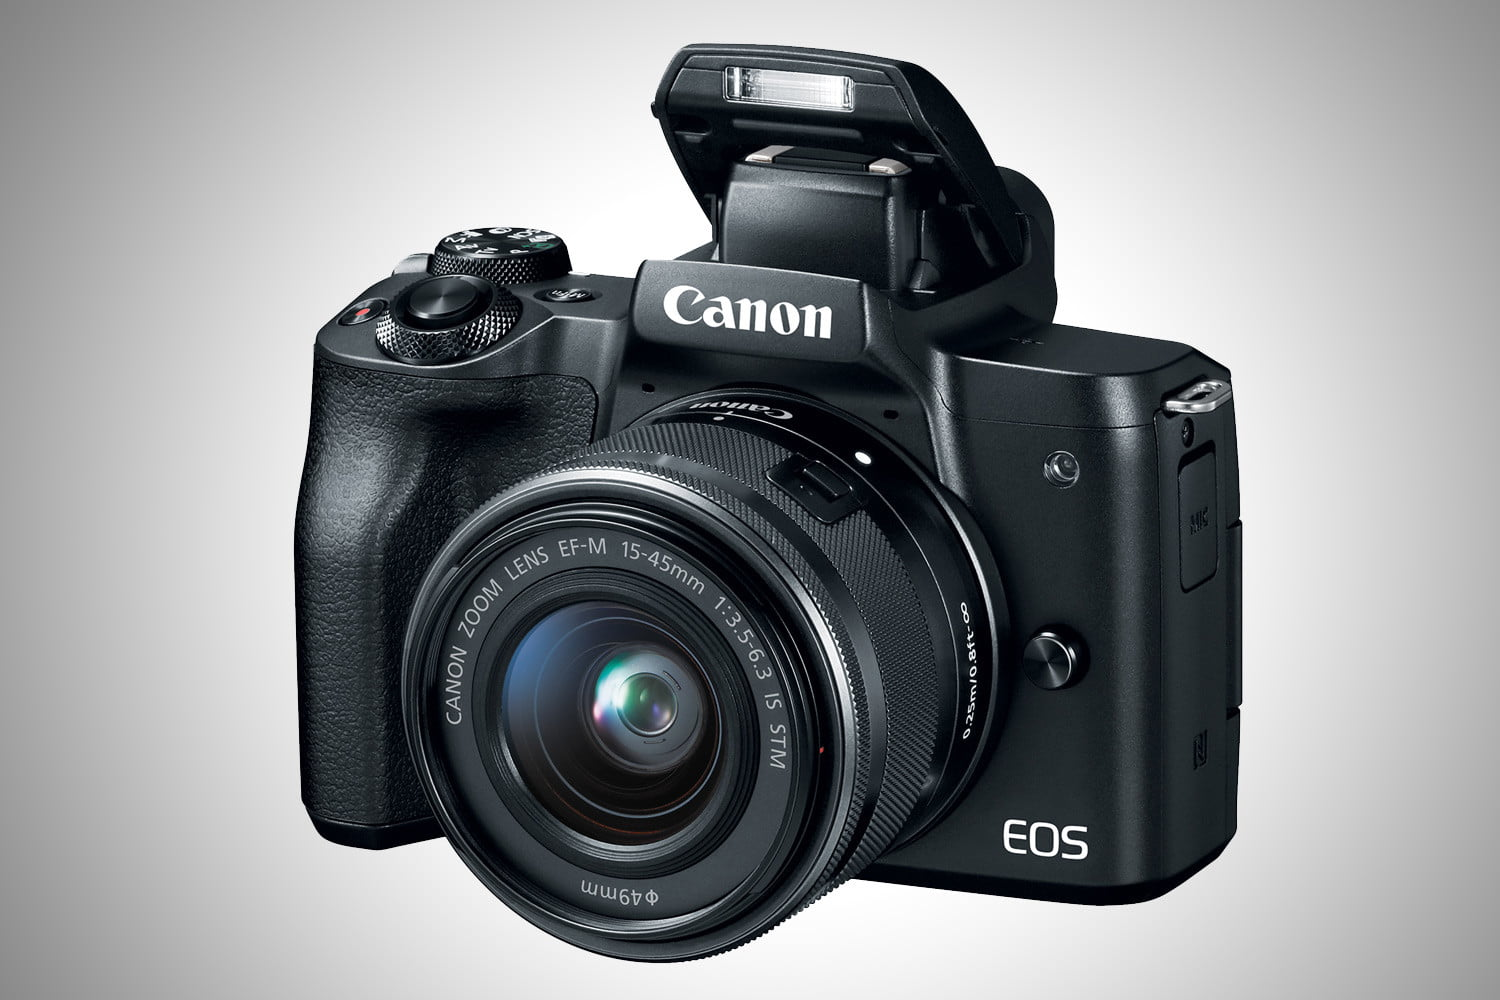 Save $731 and shoot like a pro with the Canon EOS M50 from Walmart